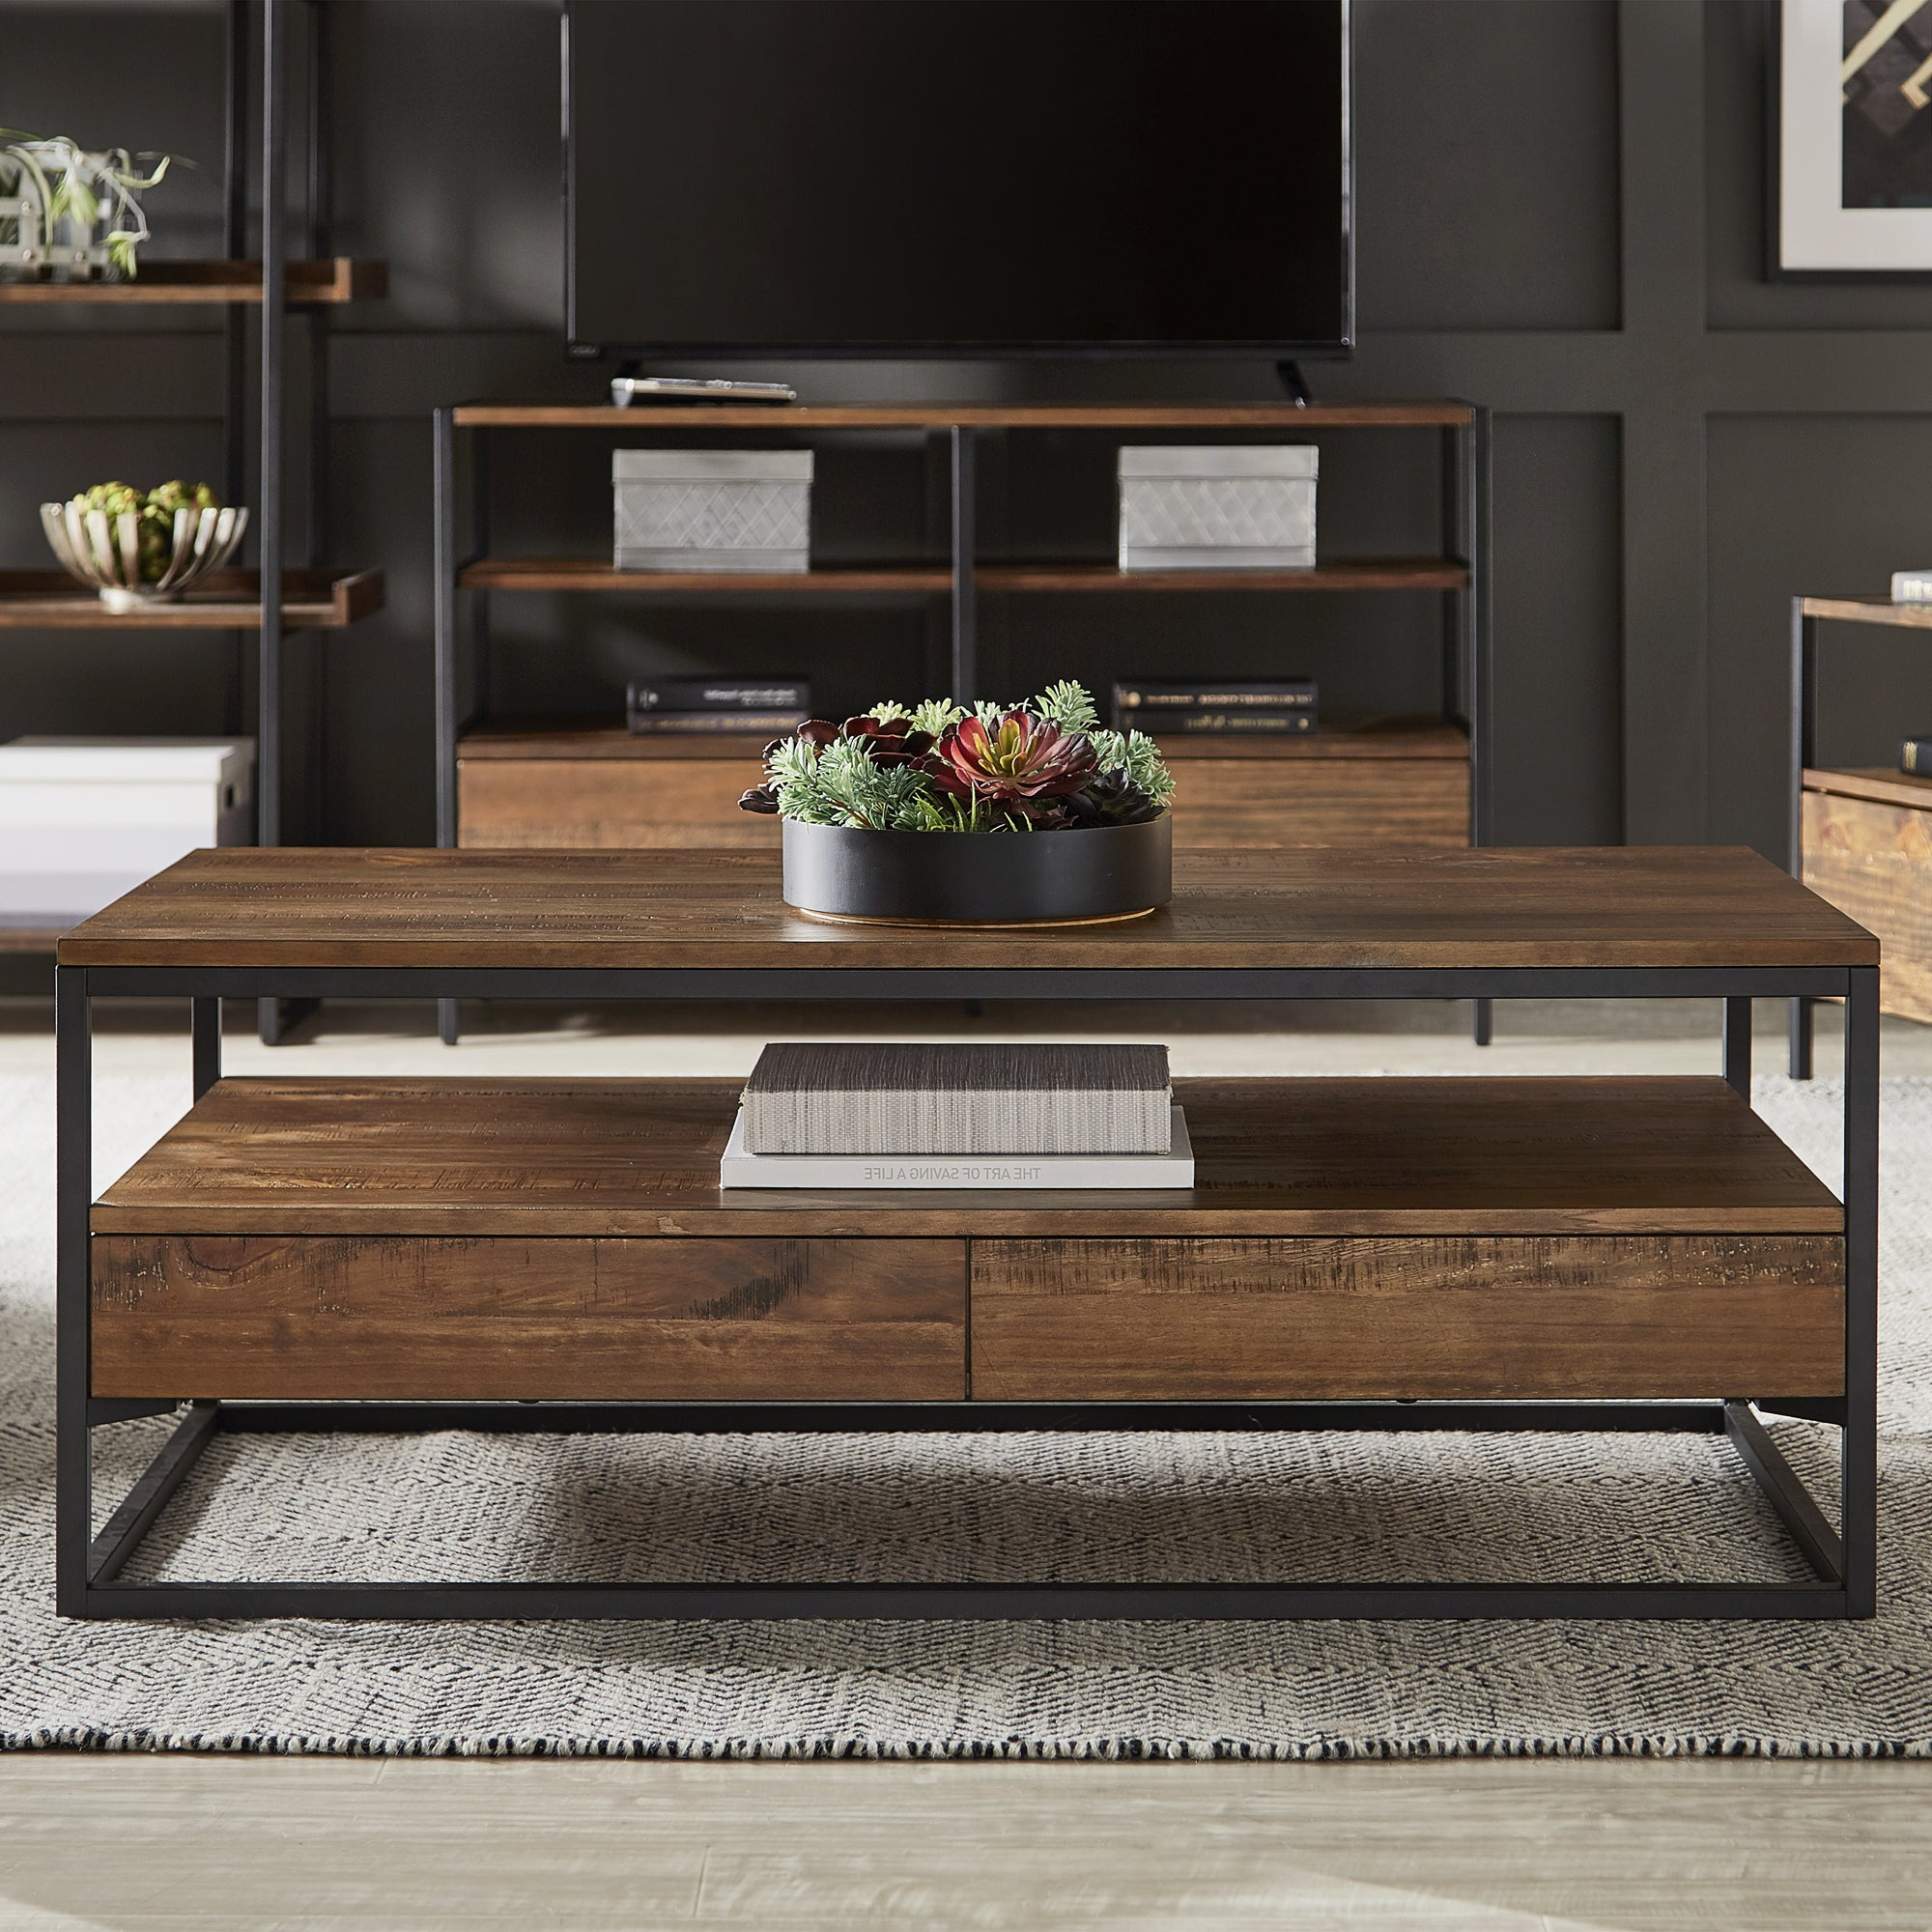 Most Recent Corey Rustic Brown Accent Tables Regarding Corey Rustic Brown Accent Tablesinspire Q Modern (View 6 of 20)